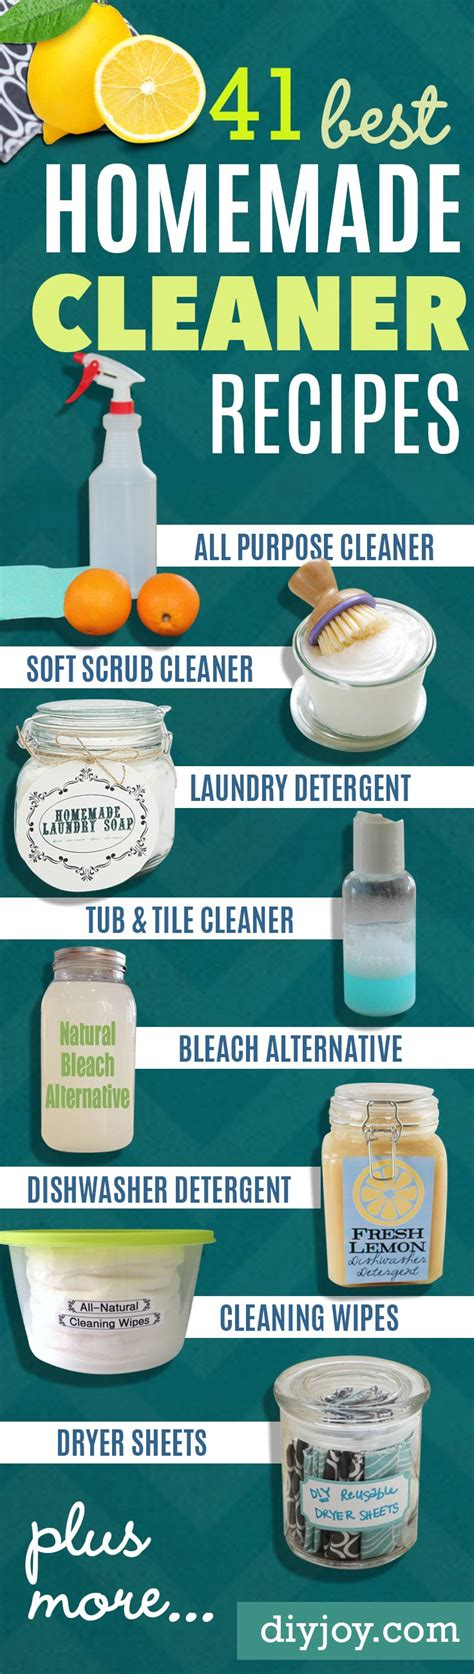 natural cleaning recipes bathroom 41 best homemade cleaner recipes